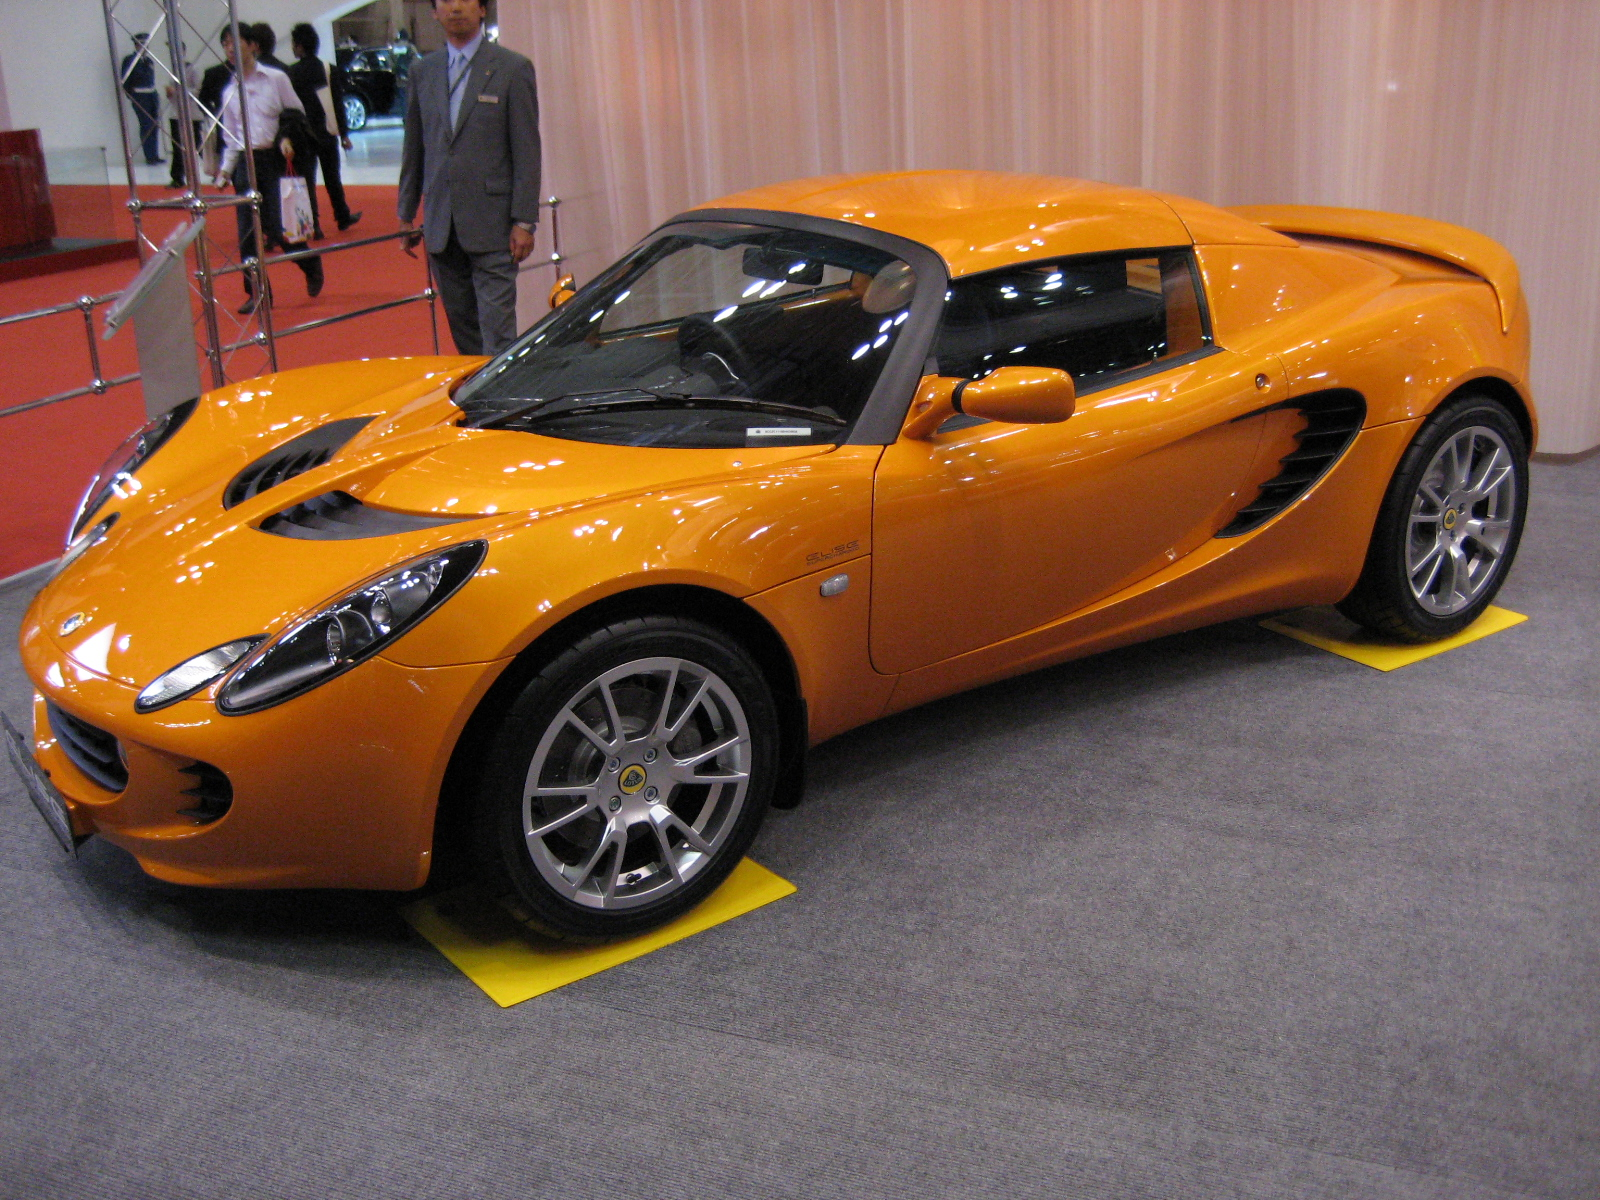 File:2007 Lotus Elise SC.JPG - Wikipedia